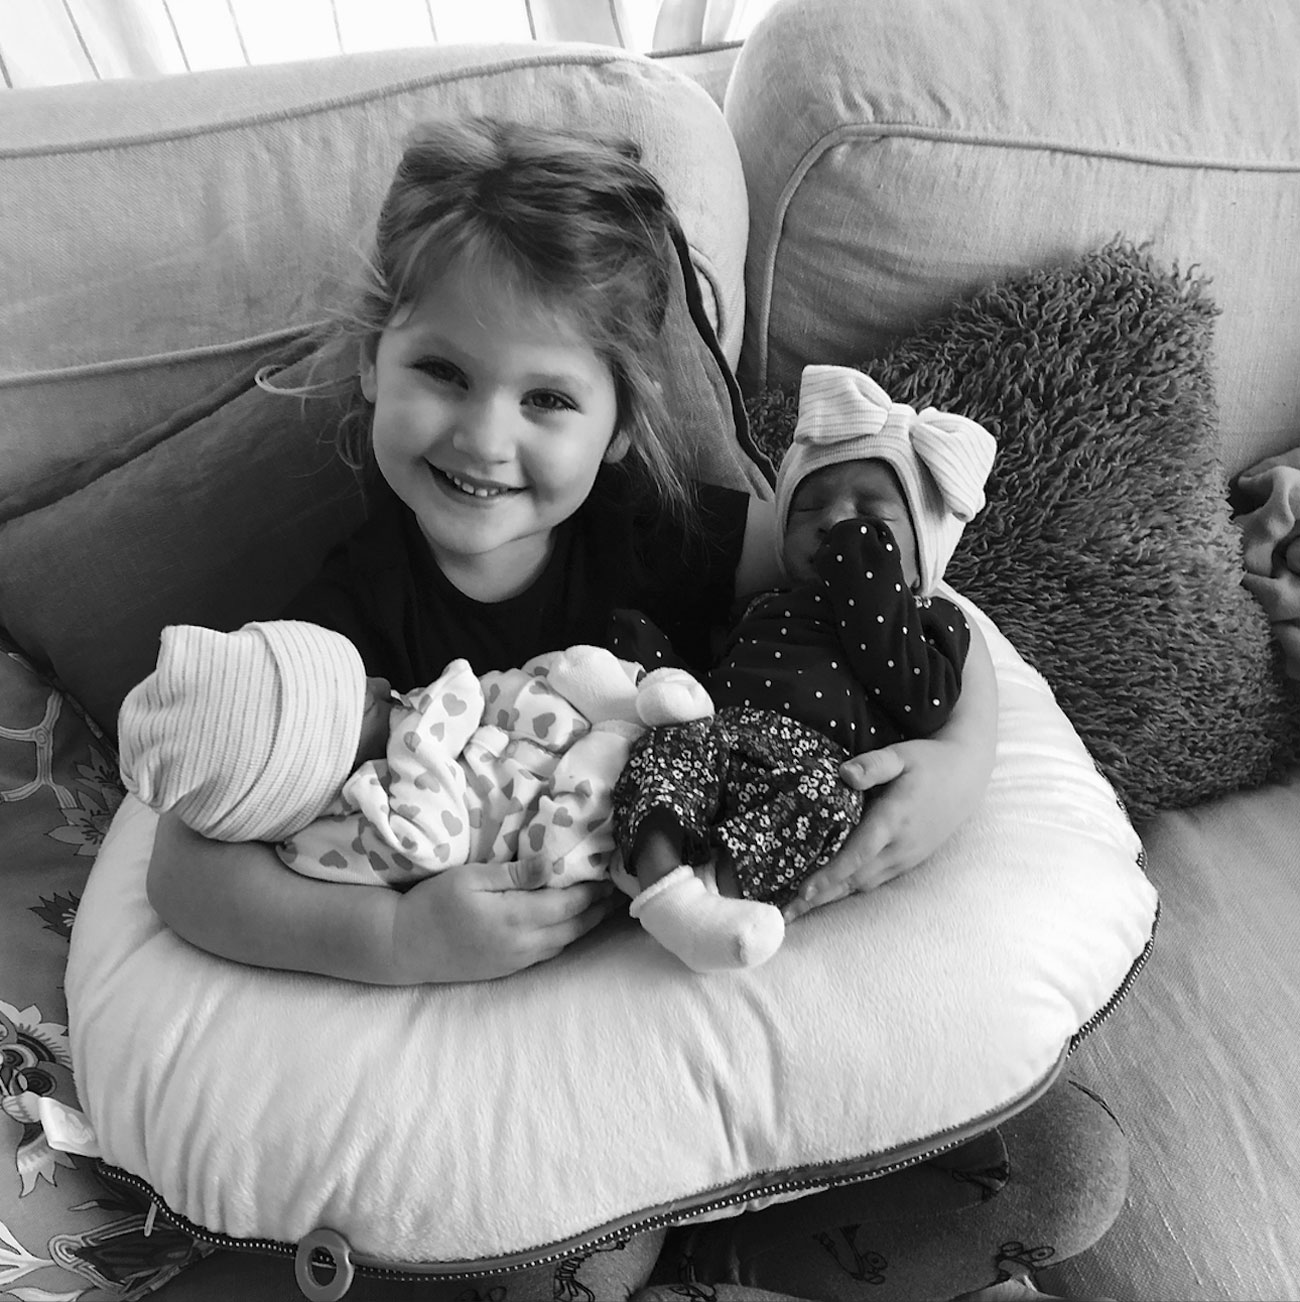 Lady Antebellum's Hillary Scott Introduces Her Newborn Twins with a Sweet Photo